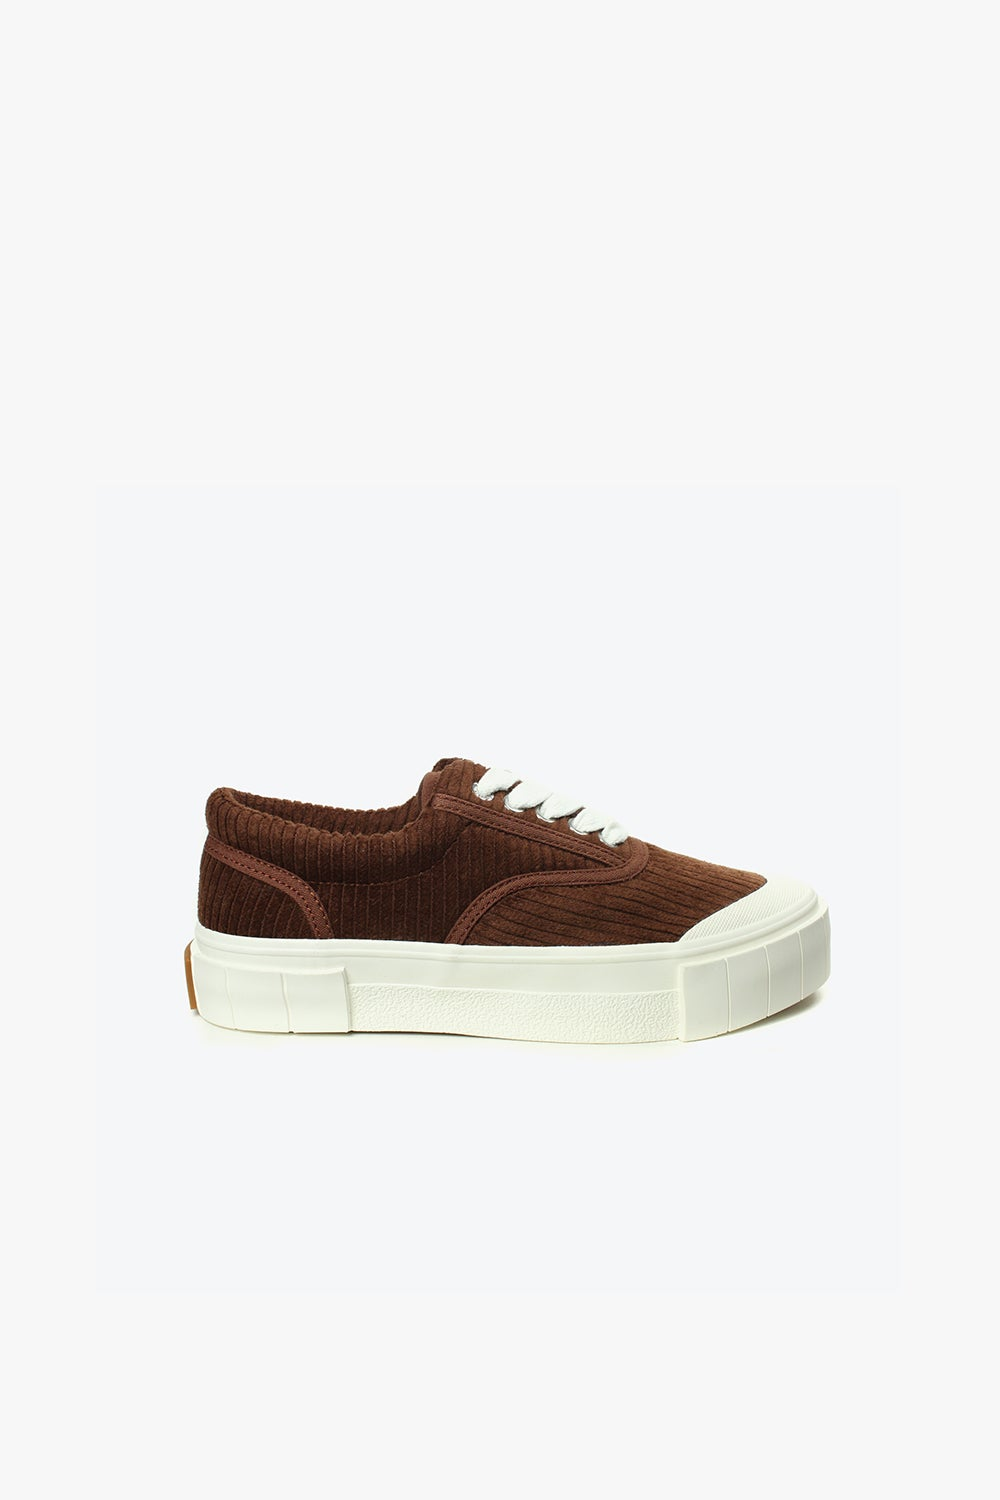 Good News Opal Corduroy Brown